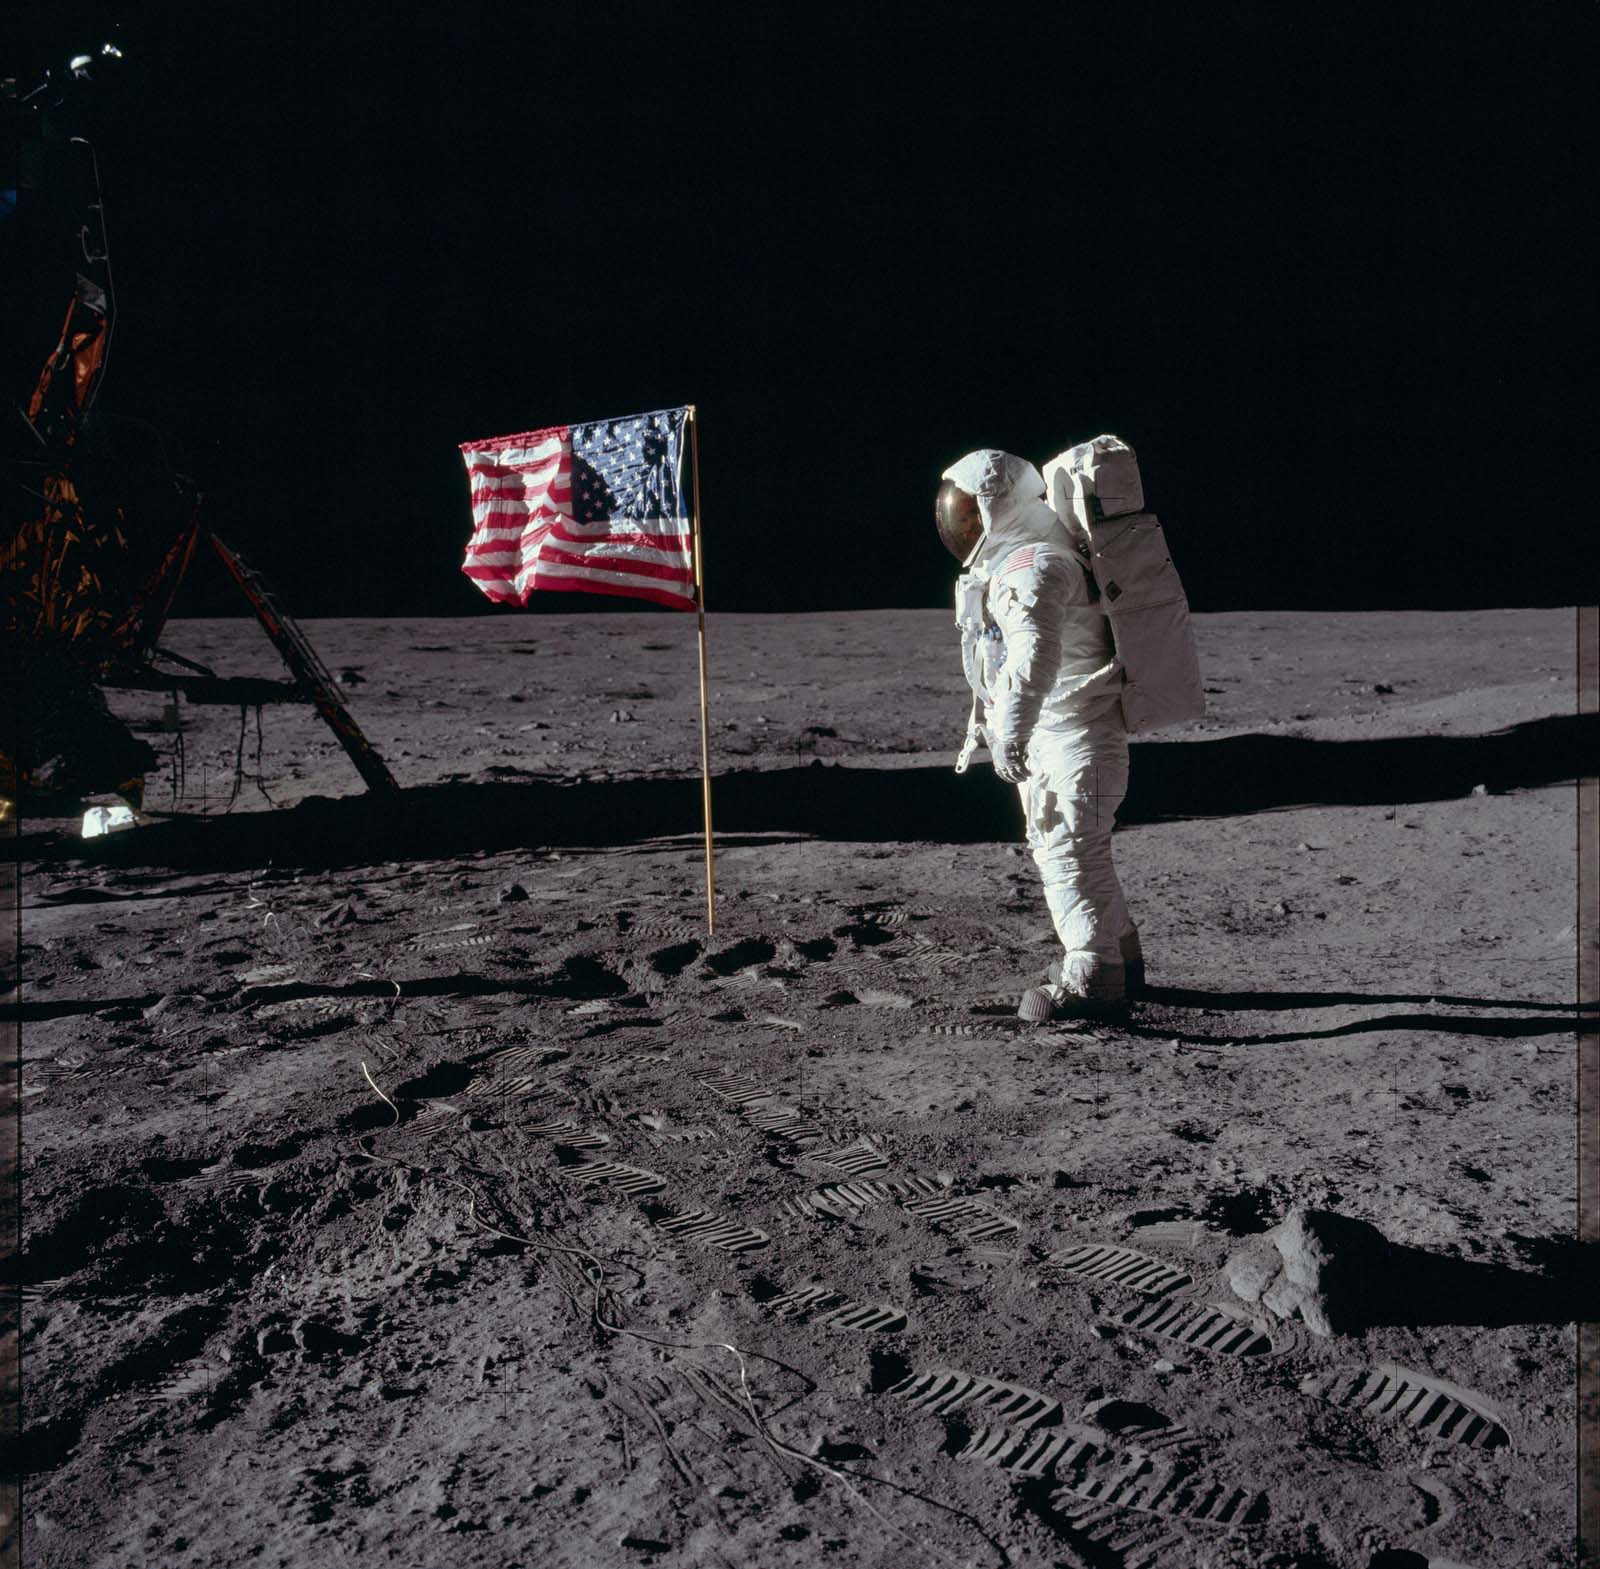 Apollo 11 astronaut Edwin Buzz Aldrin poses with the US flag planted on the Sea of Tranquility. If you look closely, you can see Aldrin's face through his helmet visor.